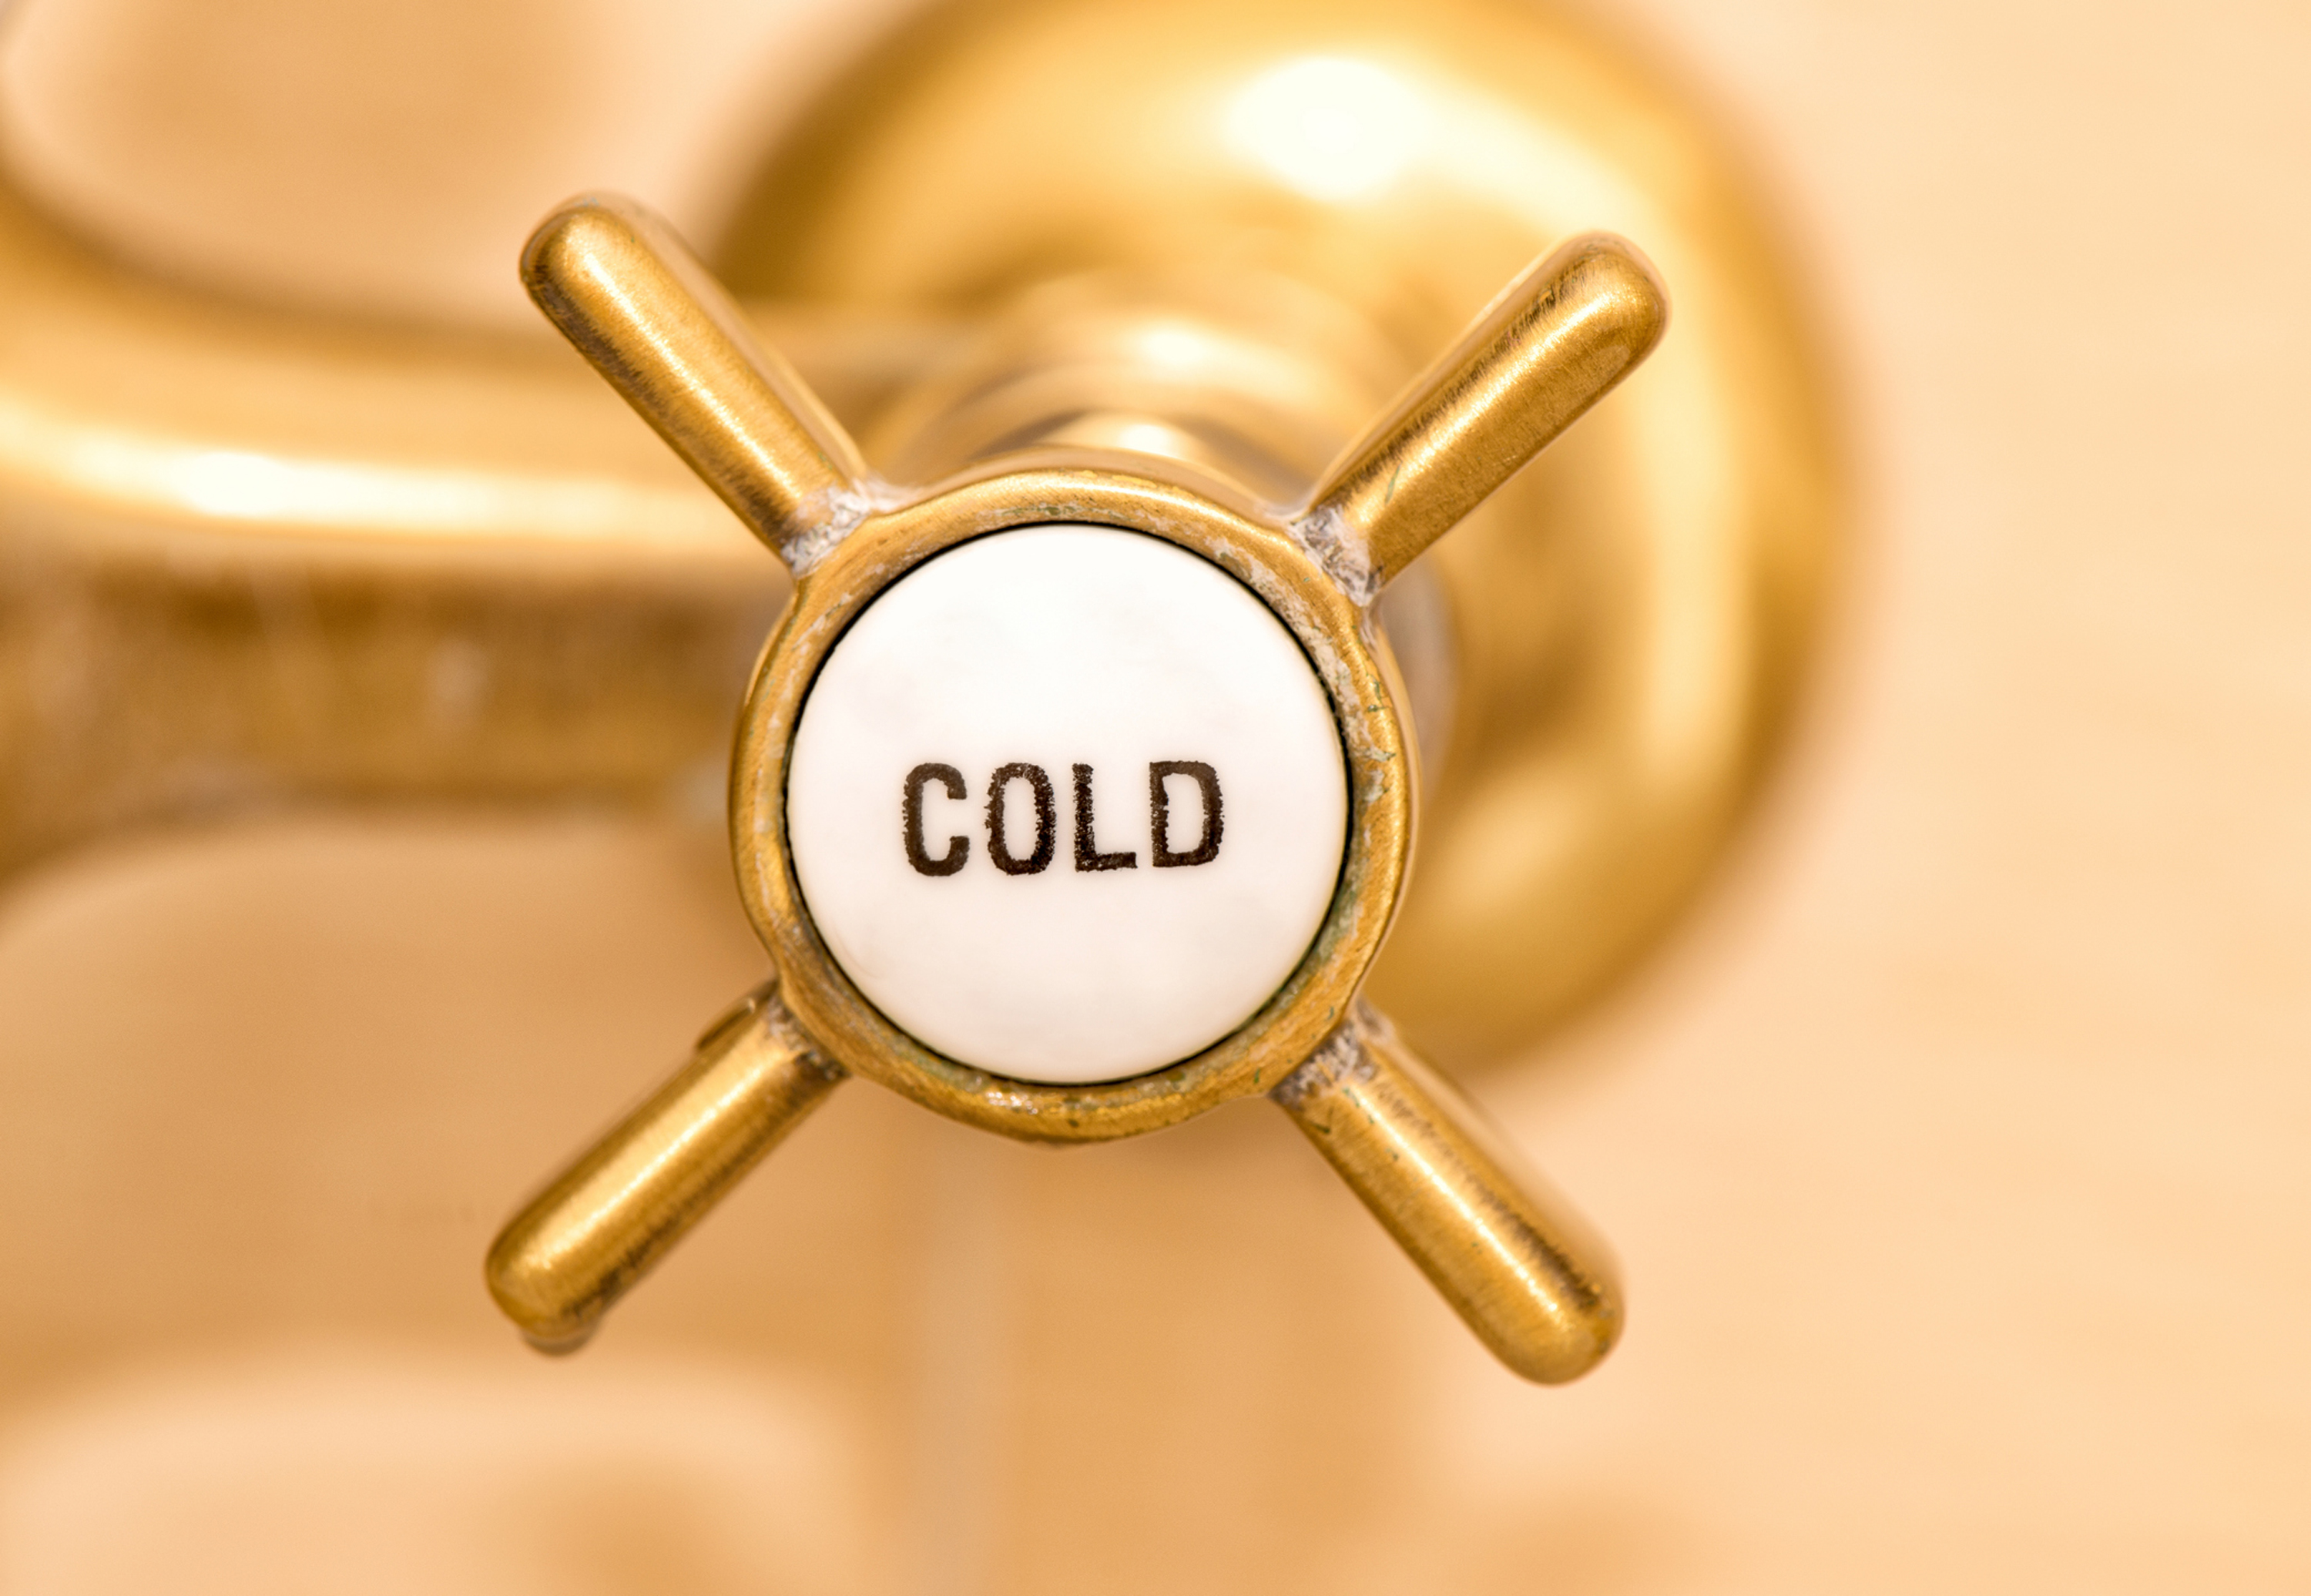 a cold tap